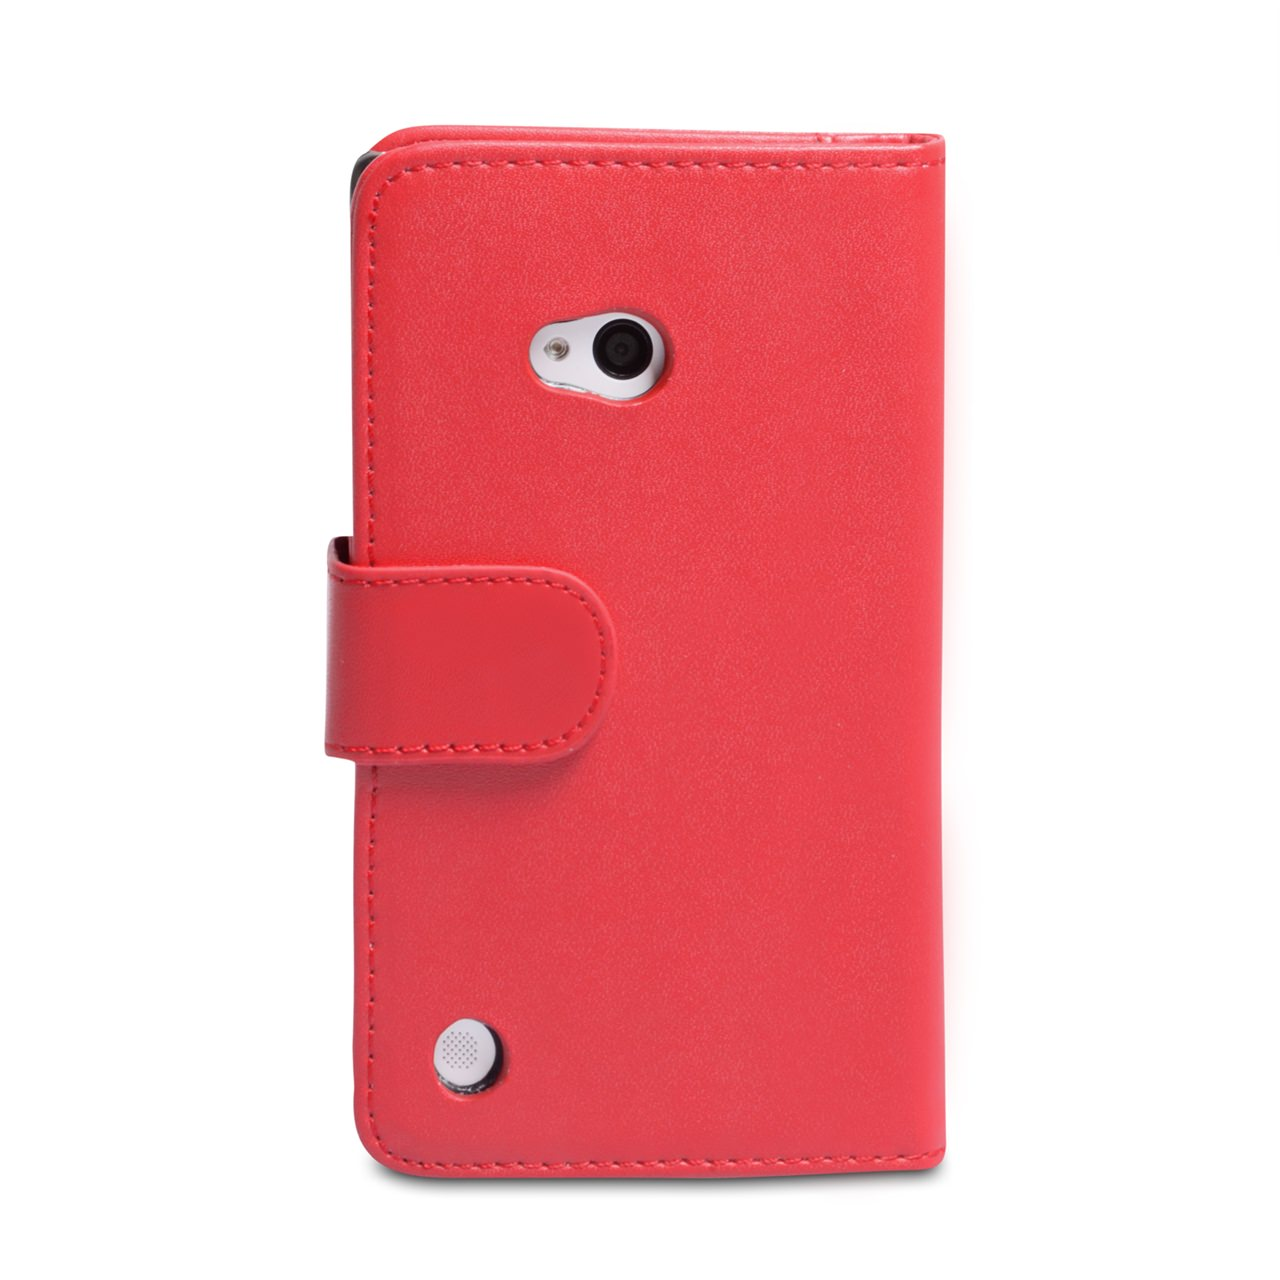 YouSave Accessories Nokia Lumia 720 Red Leather Effect Wallet Case